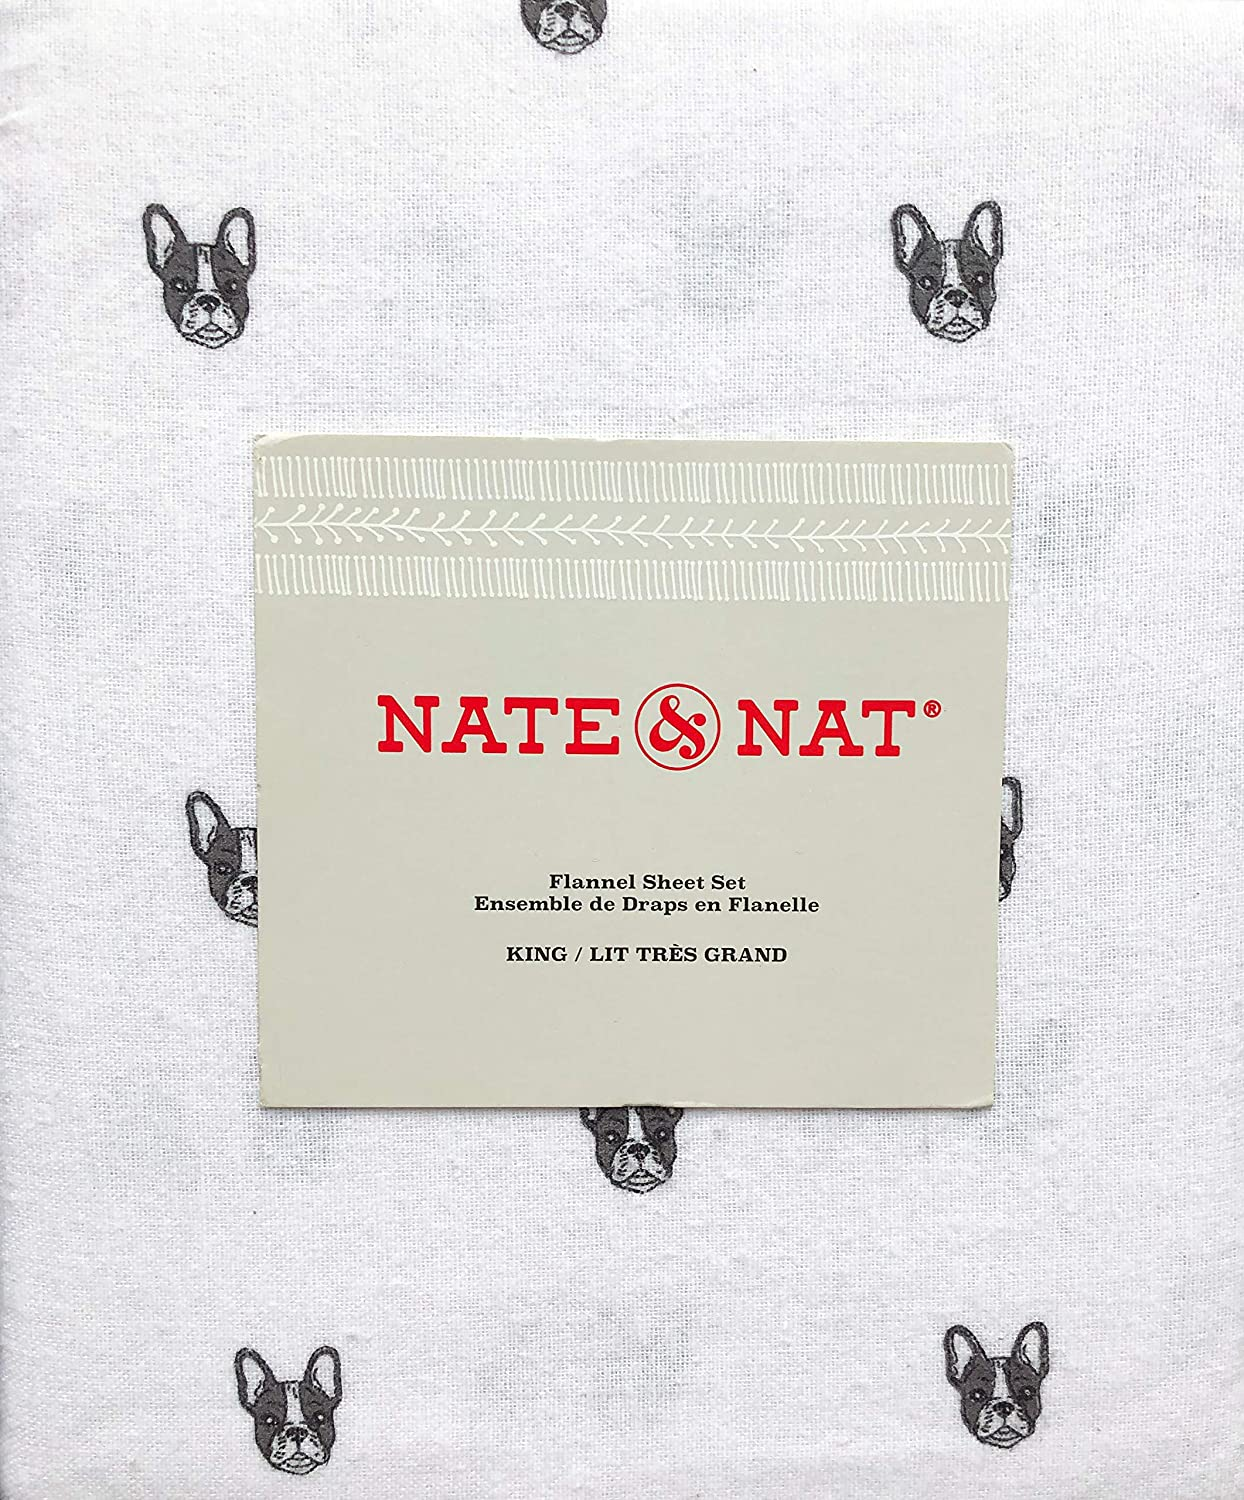 Amazon Com Nate Nat 4 Piece Cotton Flannel King Size Sheet Set Frenchies Puppy Dog Faces Home Kitchen